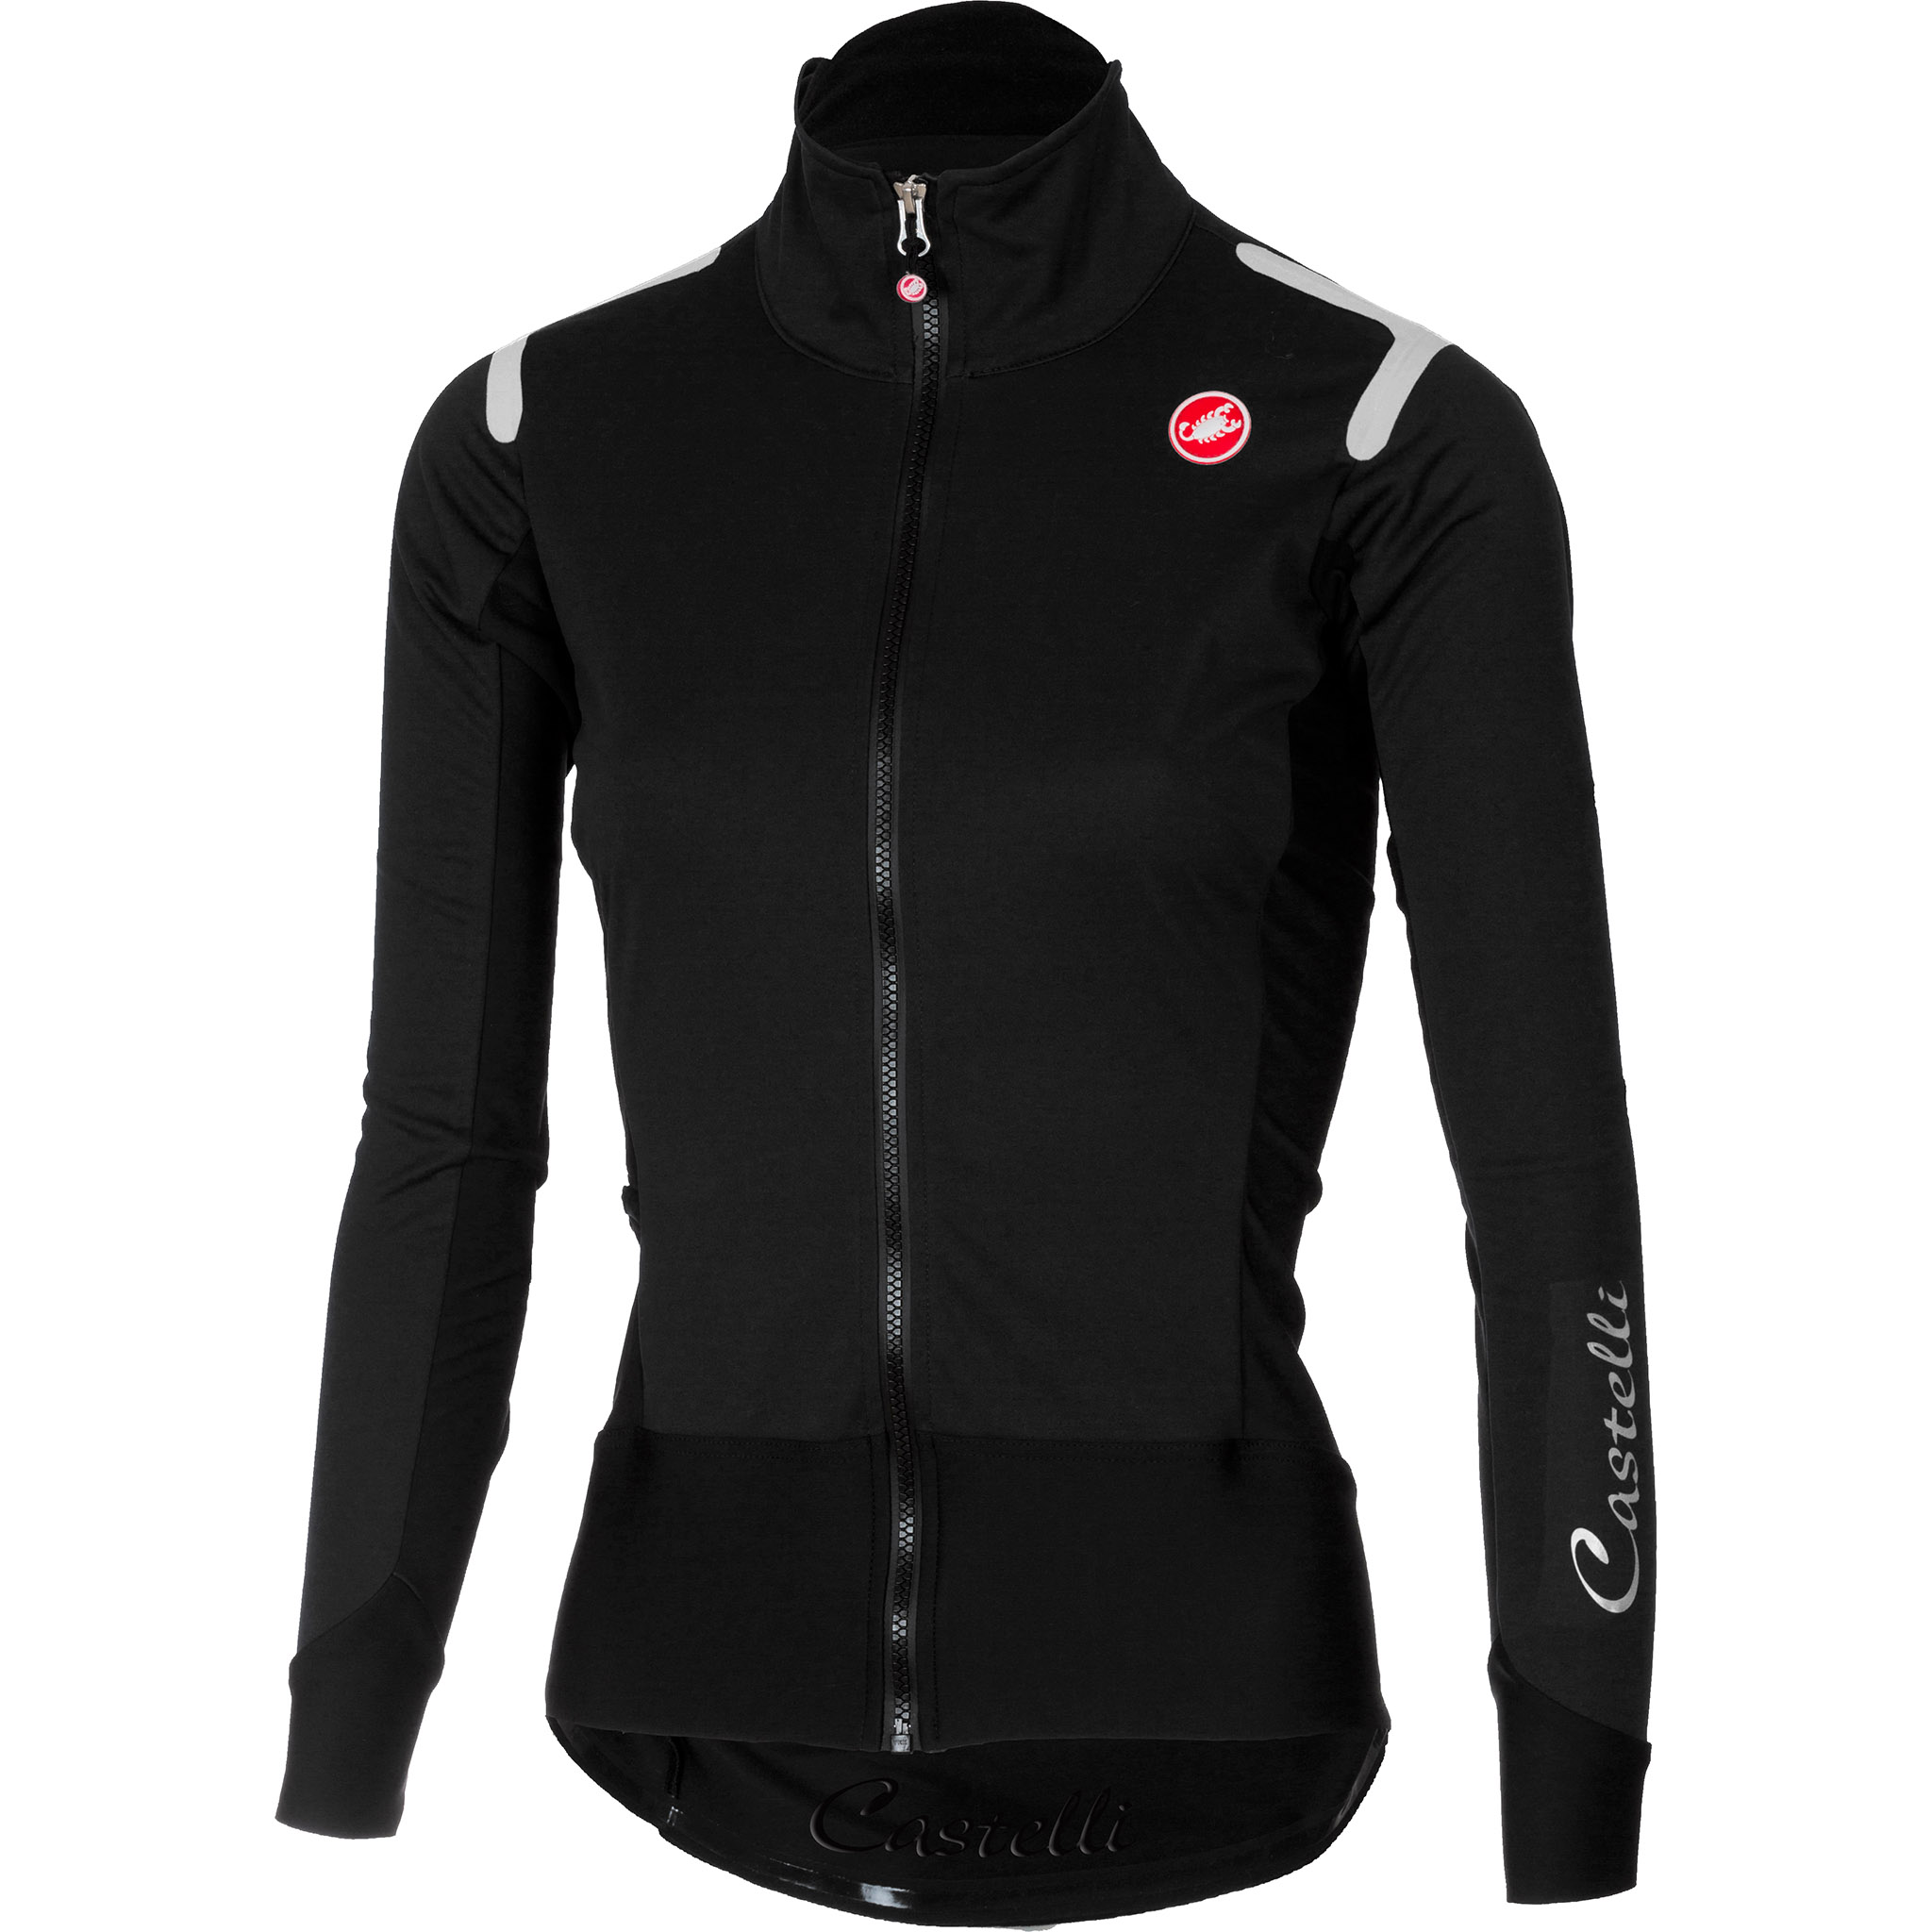 Castelli Giacca Aplha Ros woman Jersey